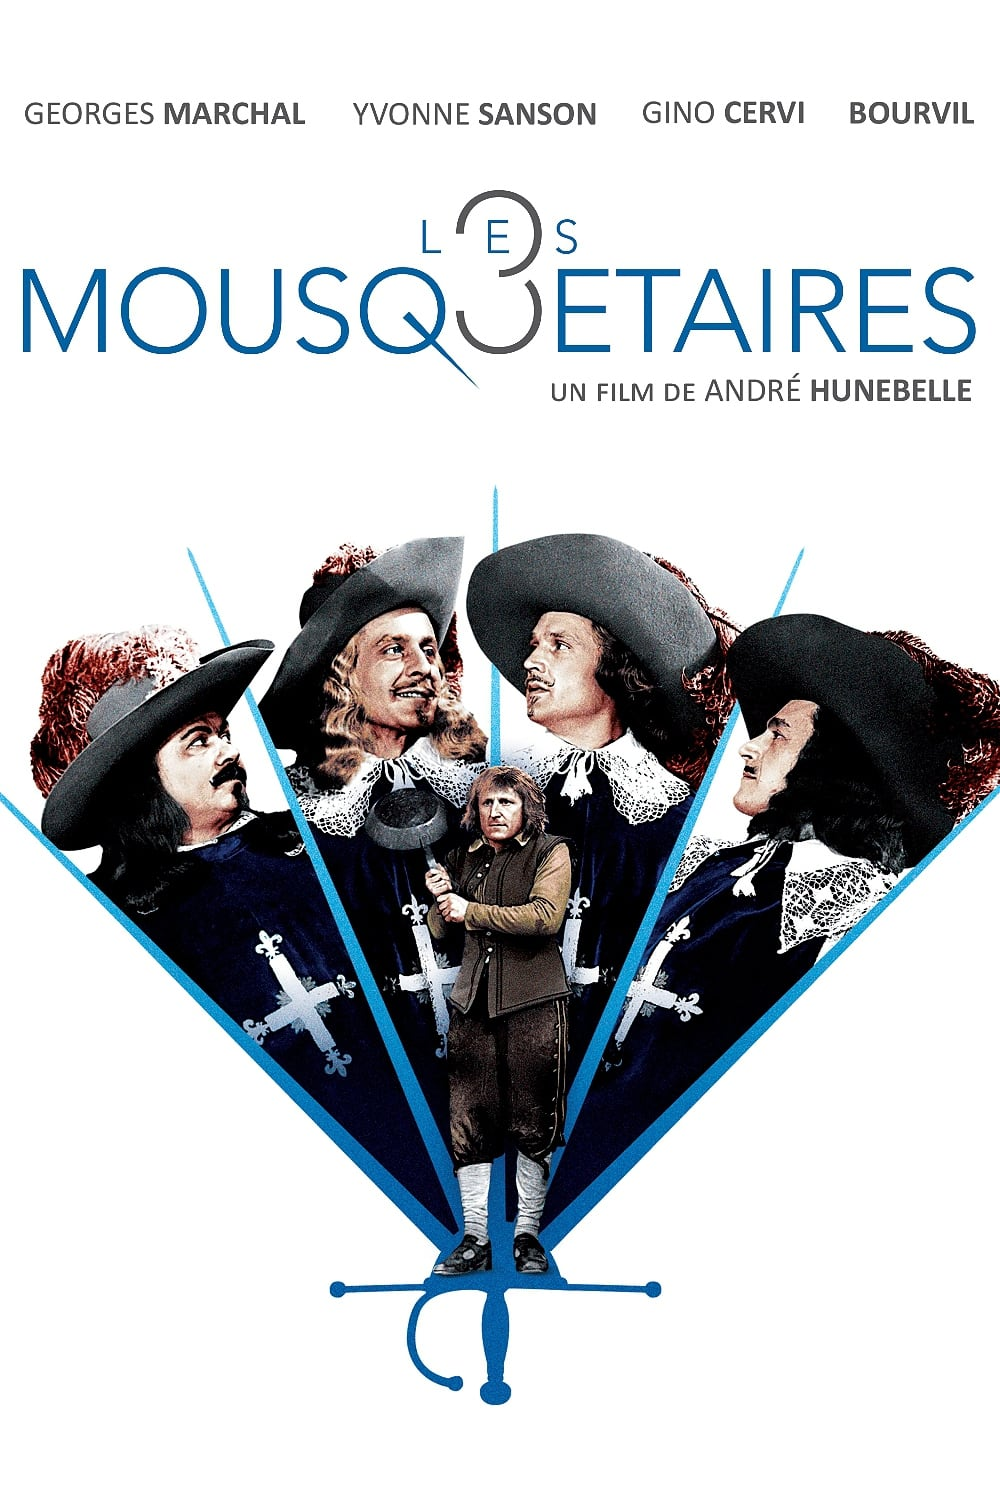 The Three Musketeers (1953)